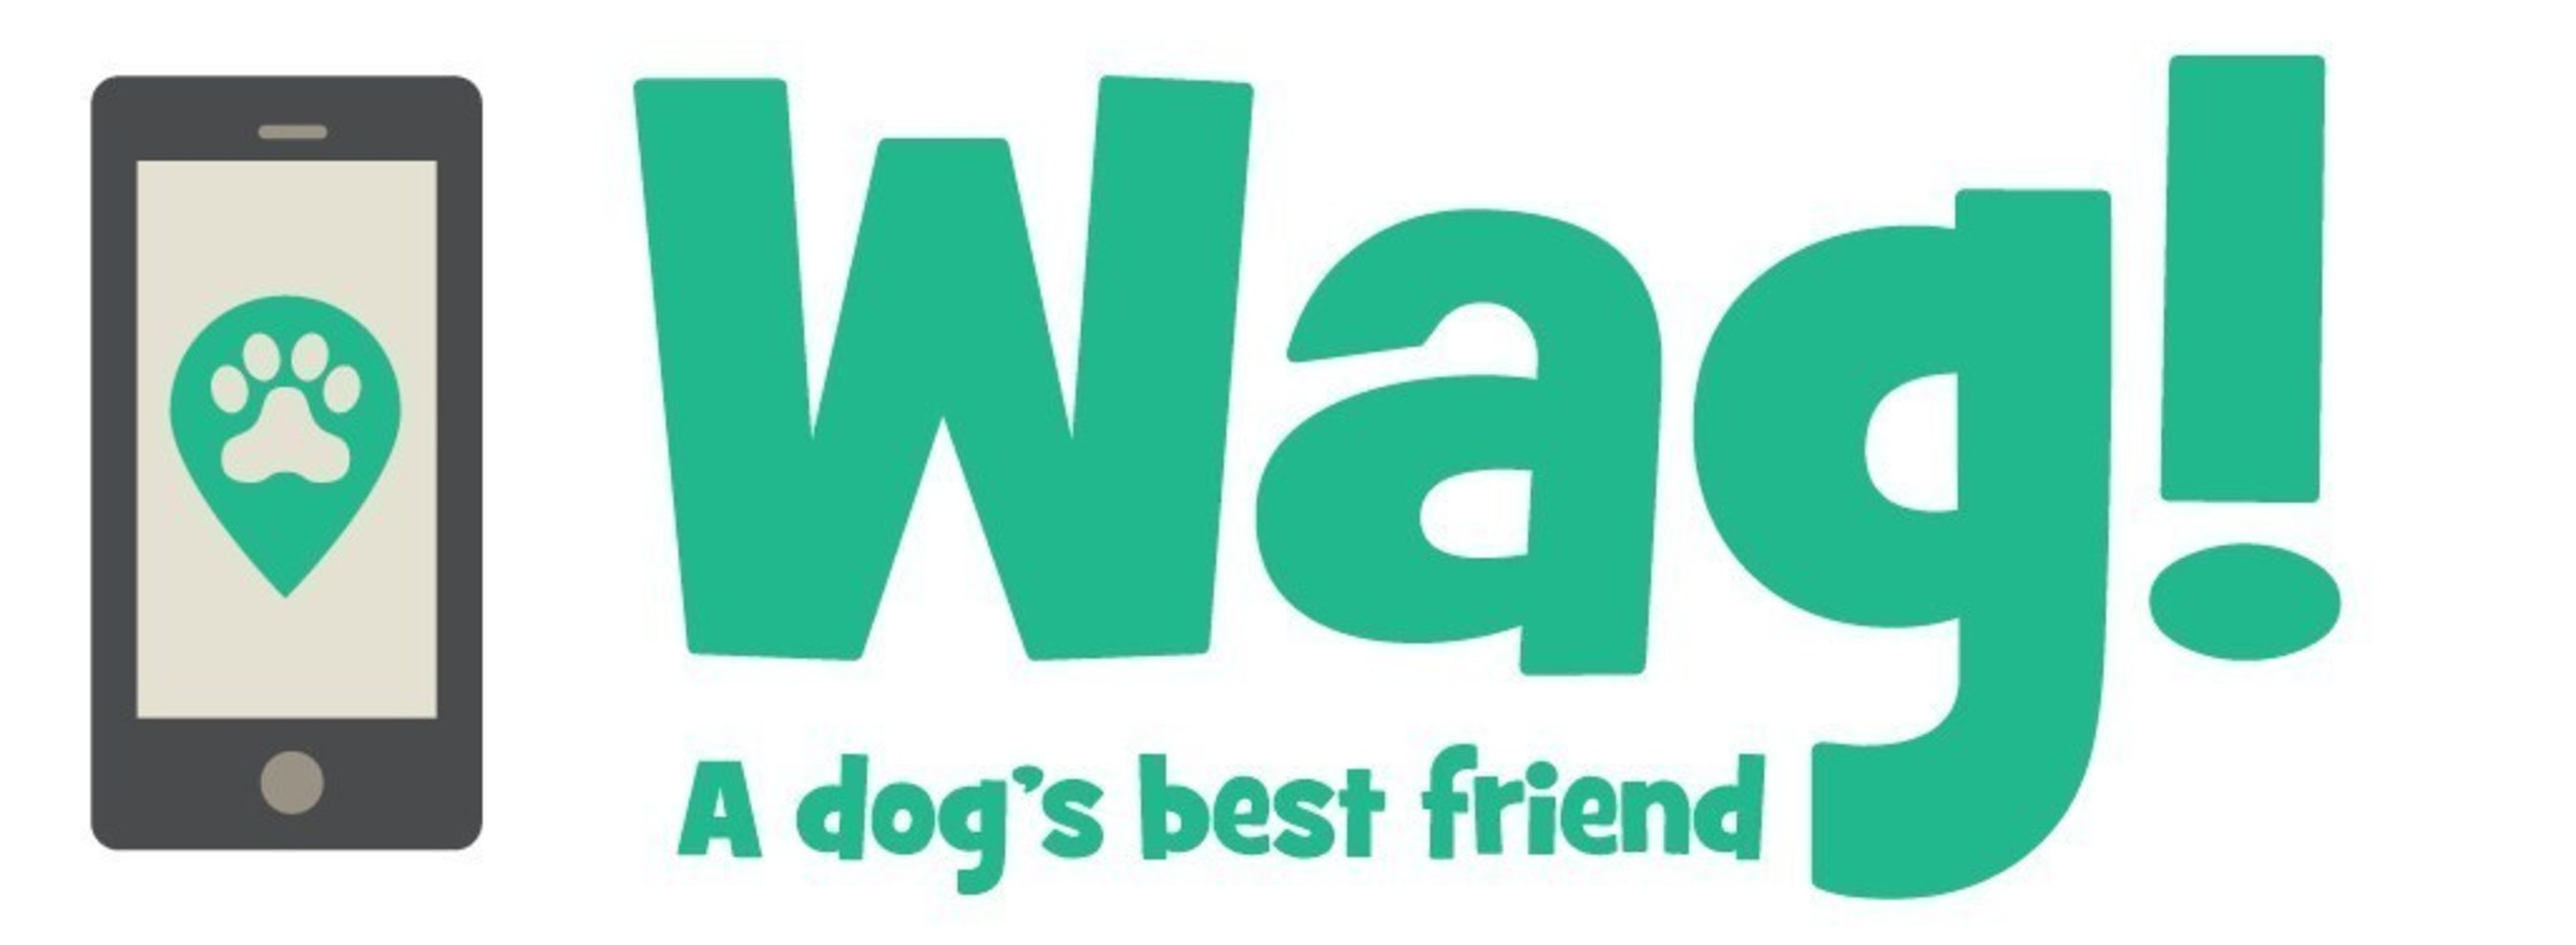 On-Demand Dog Walking App Wag! Launches in Denver